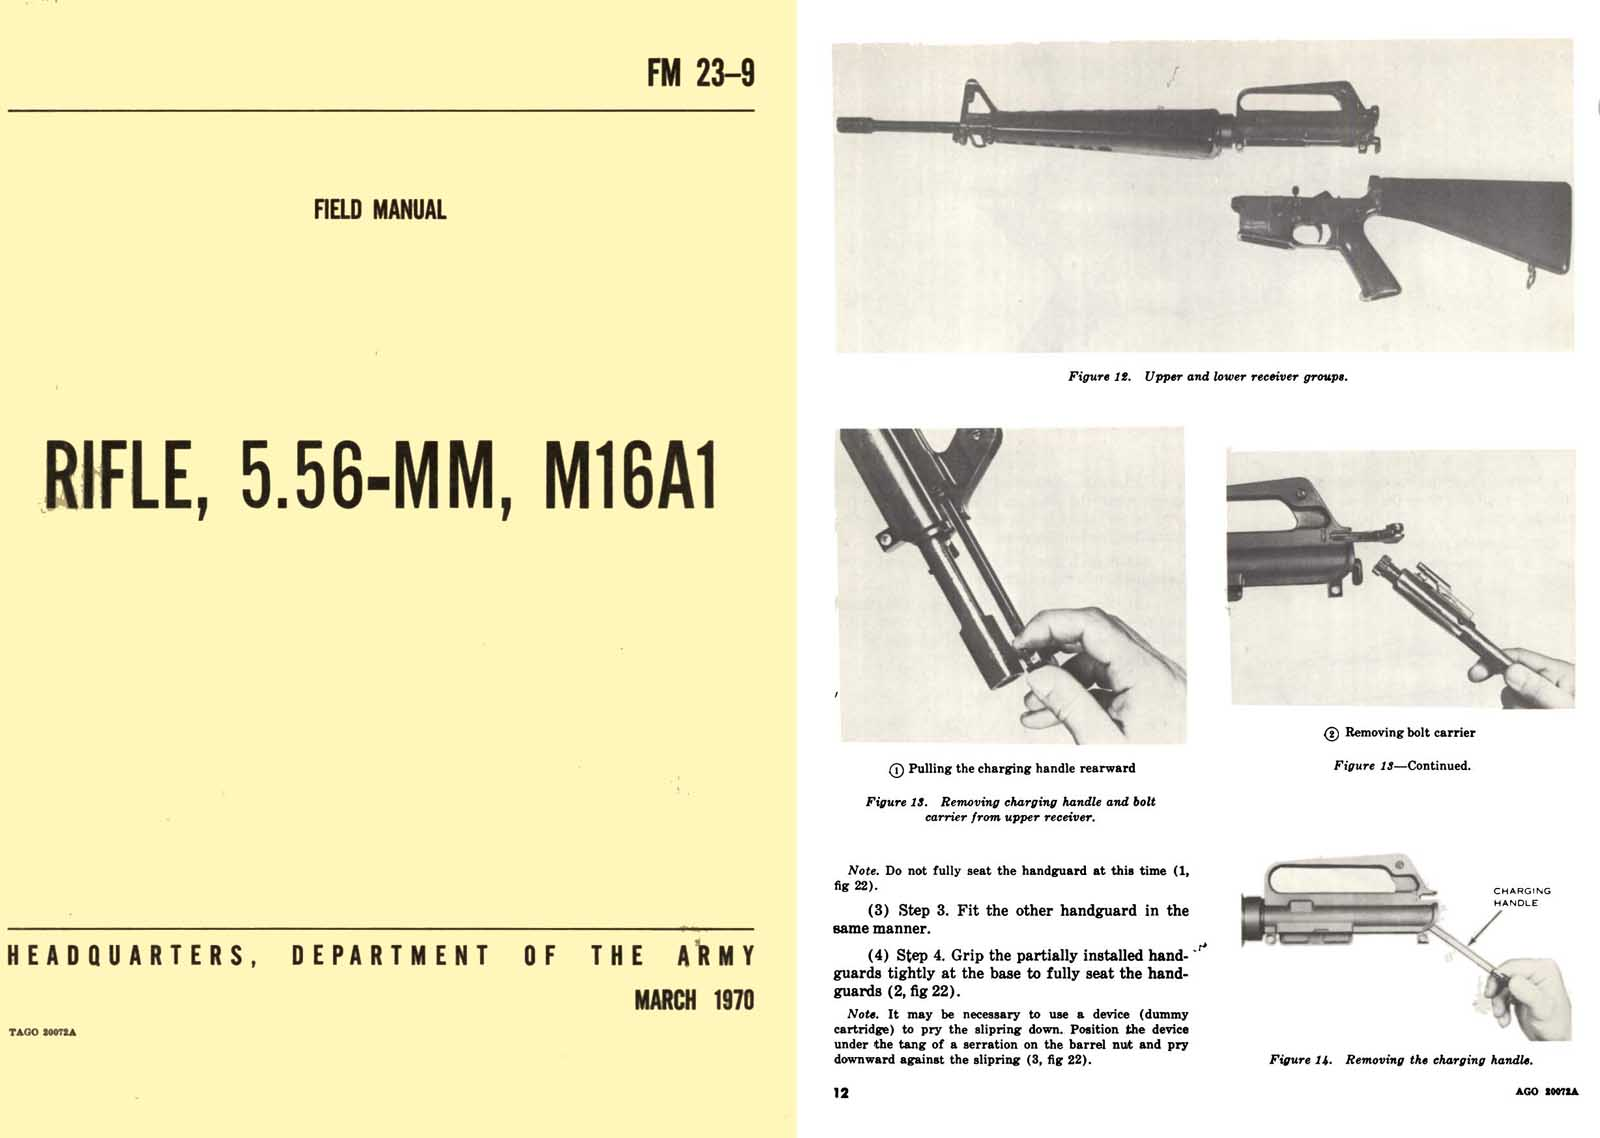 FM 23-9 Rifle, M16A1 5.56MM Field Manual 1970